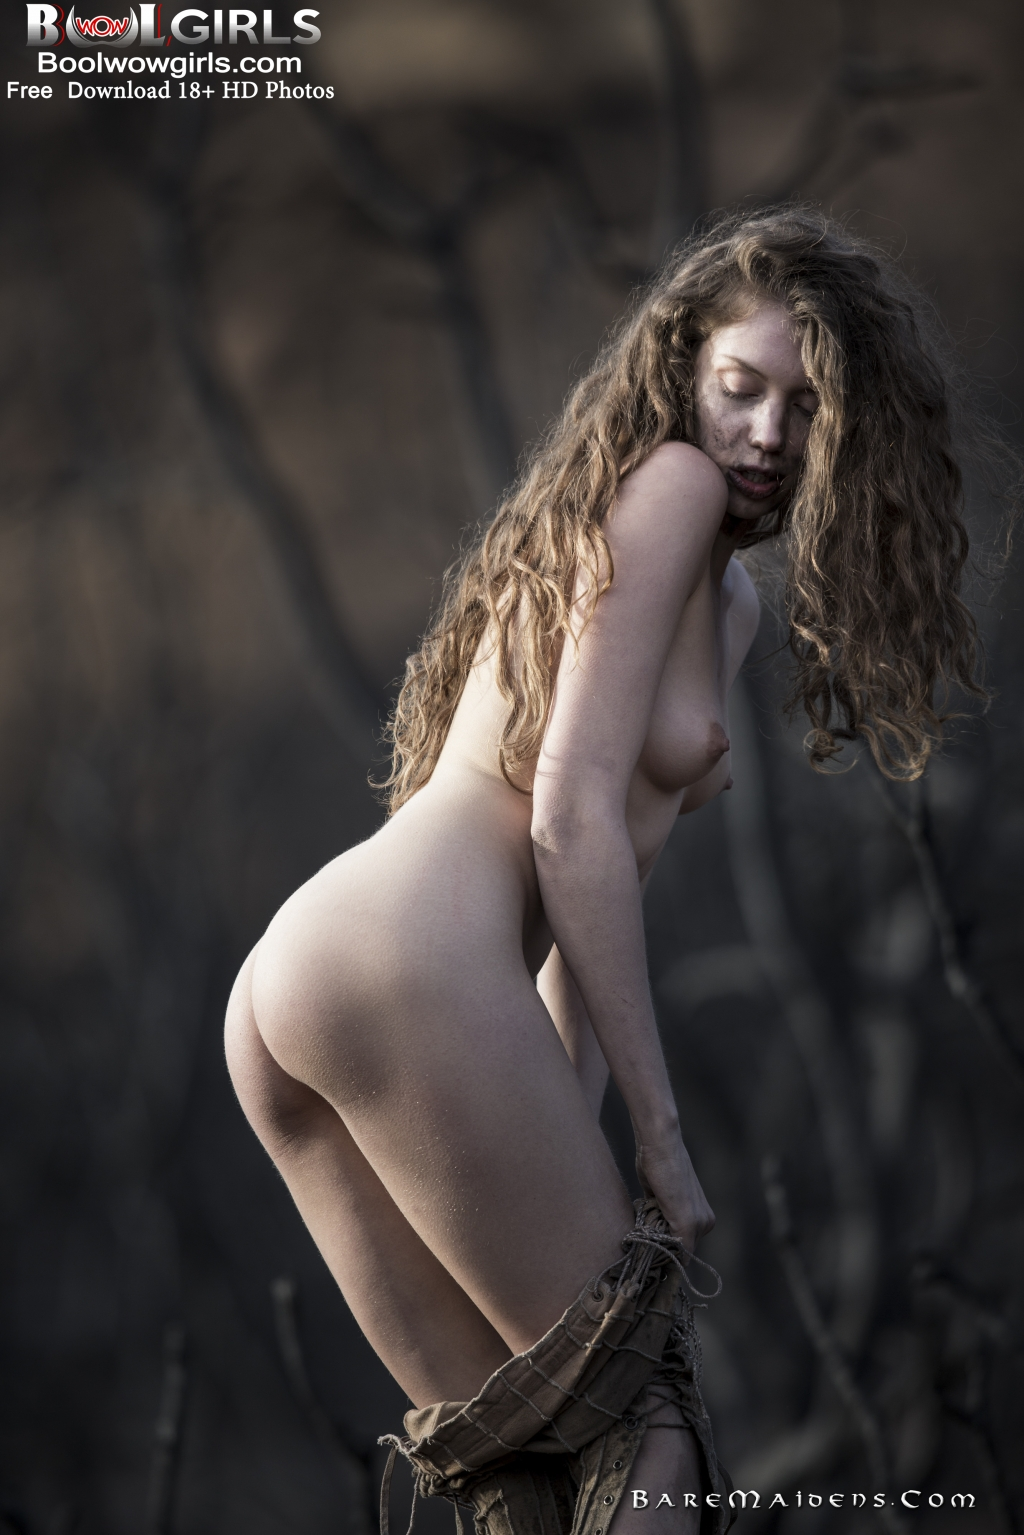 Such bare maidens nude think, that